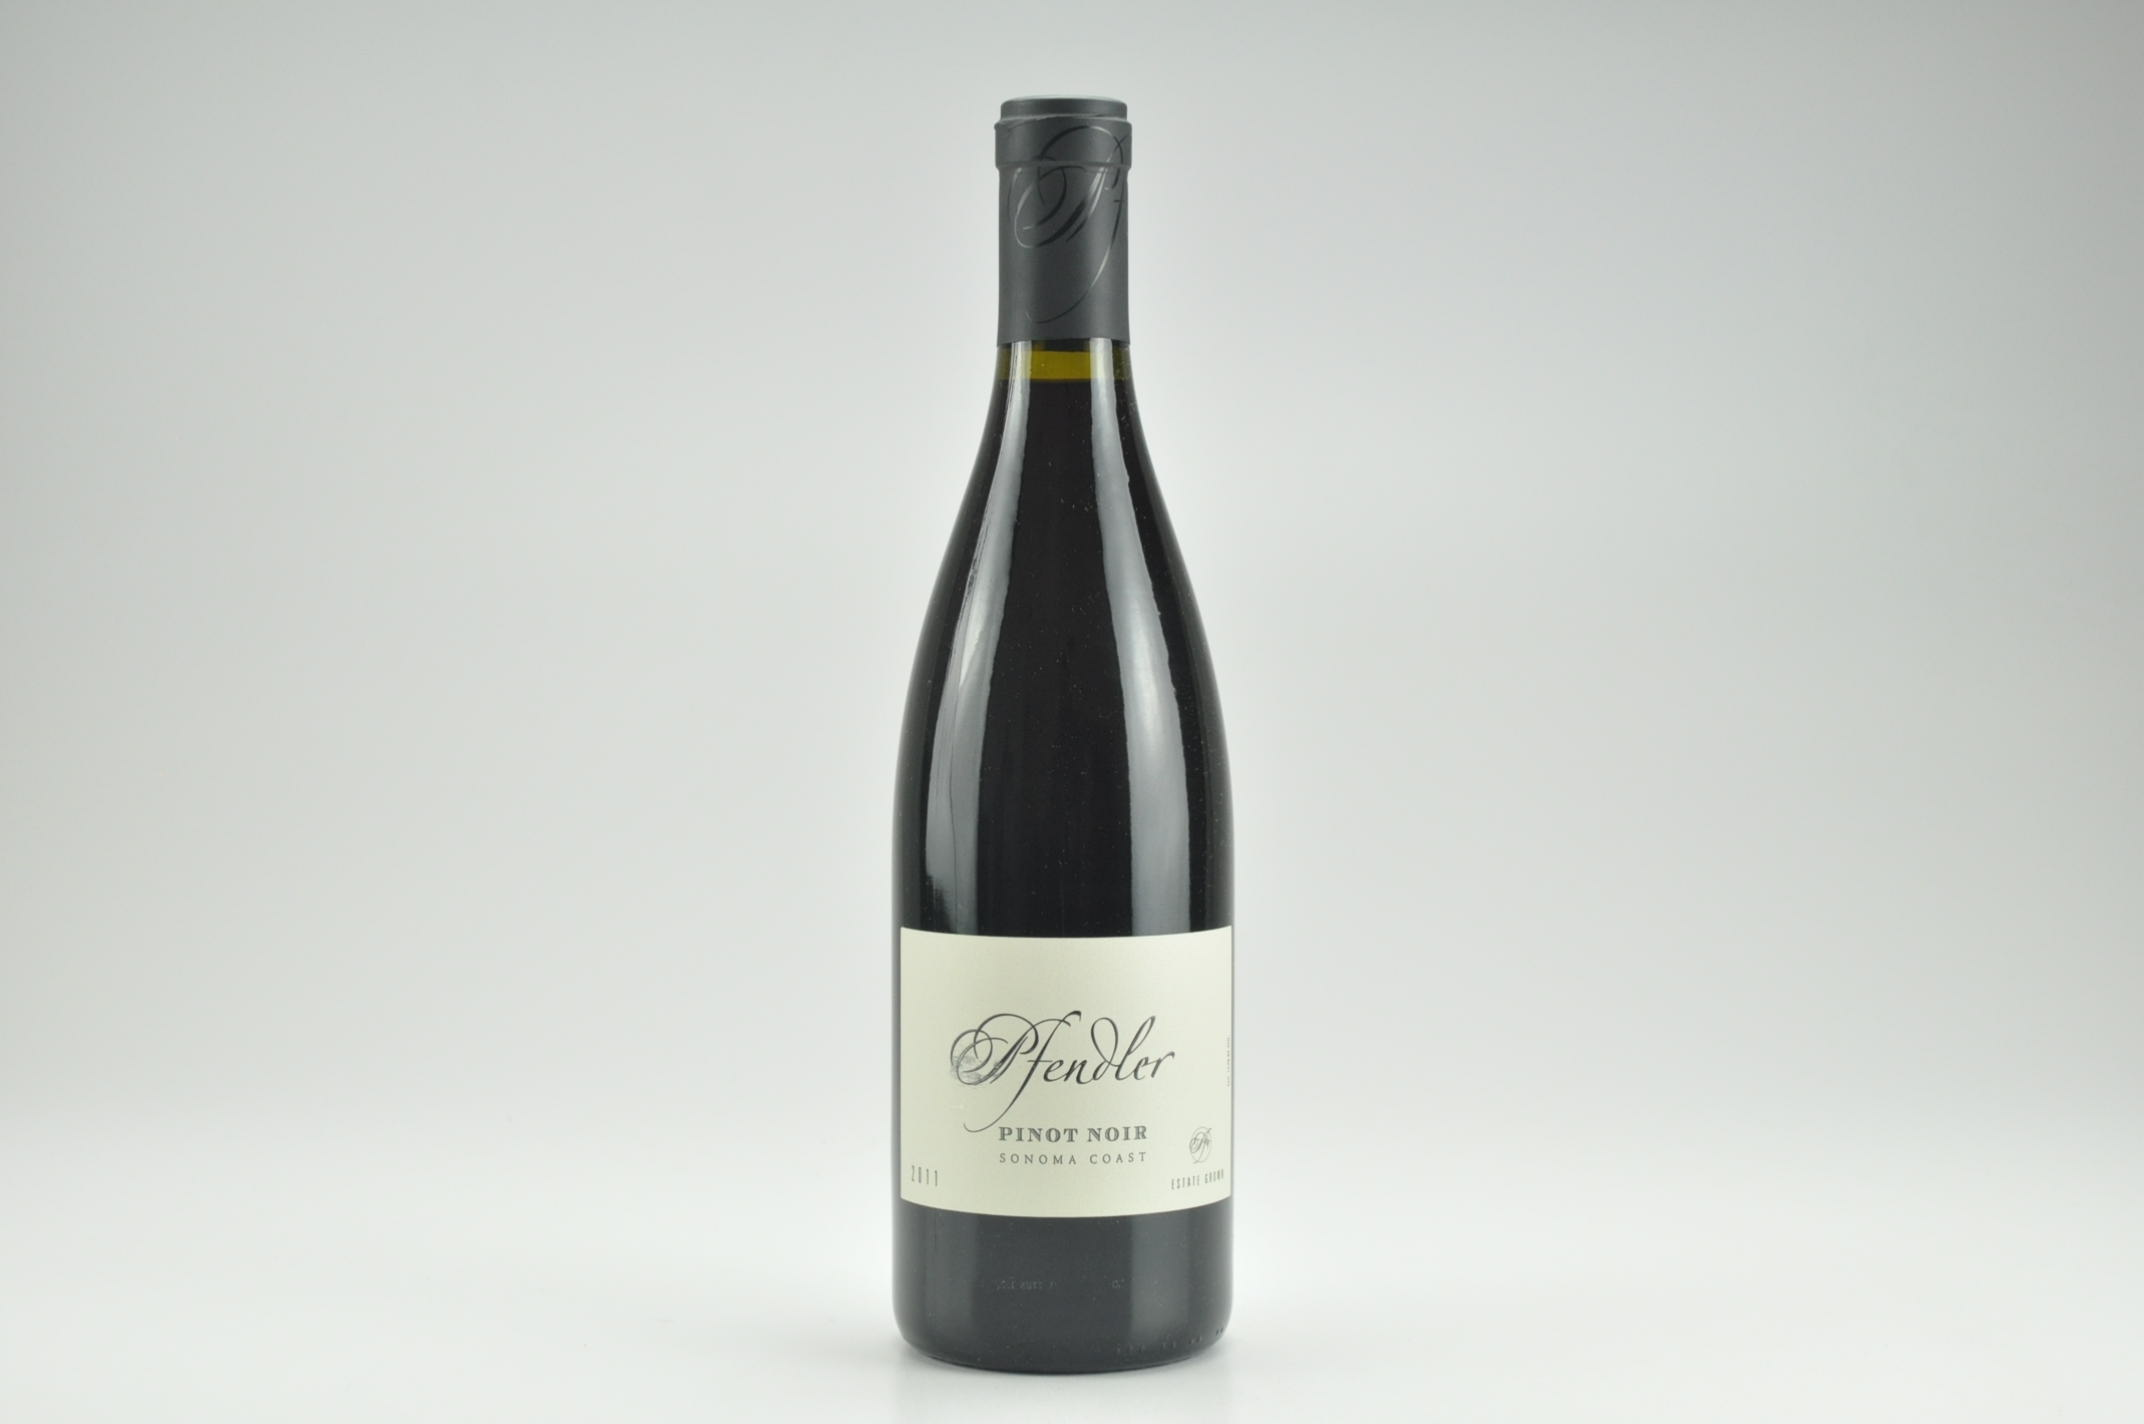 2011 Pfendler Pinot Noir, Sonoma Coast Other--94